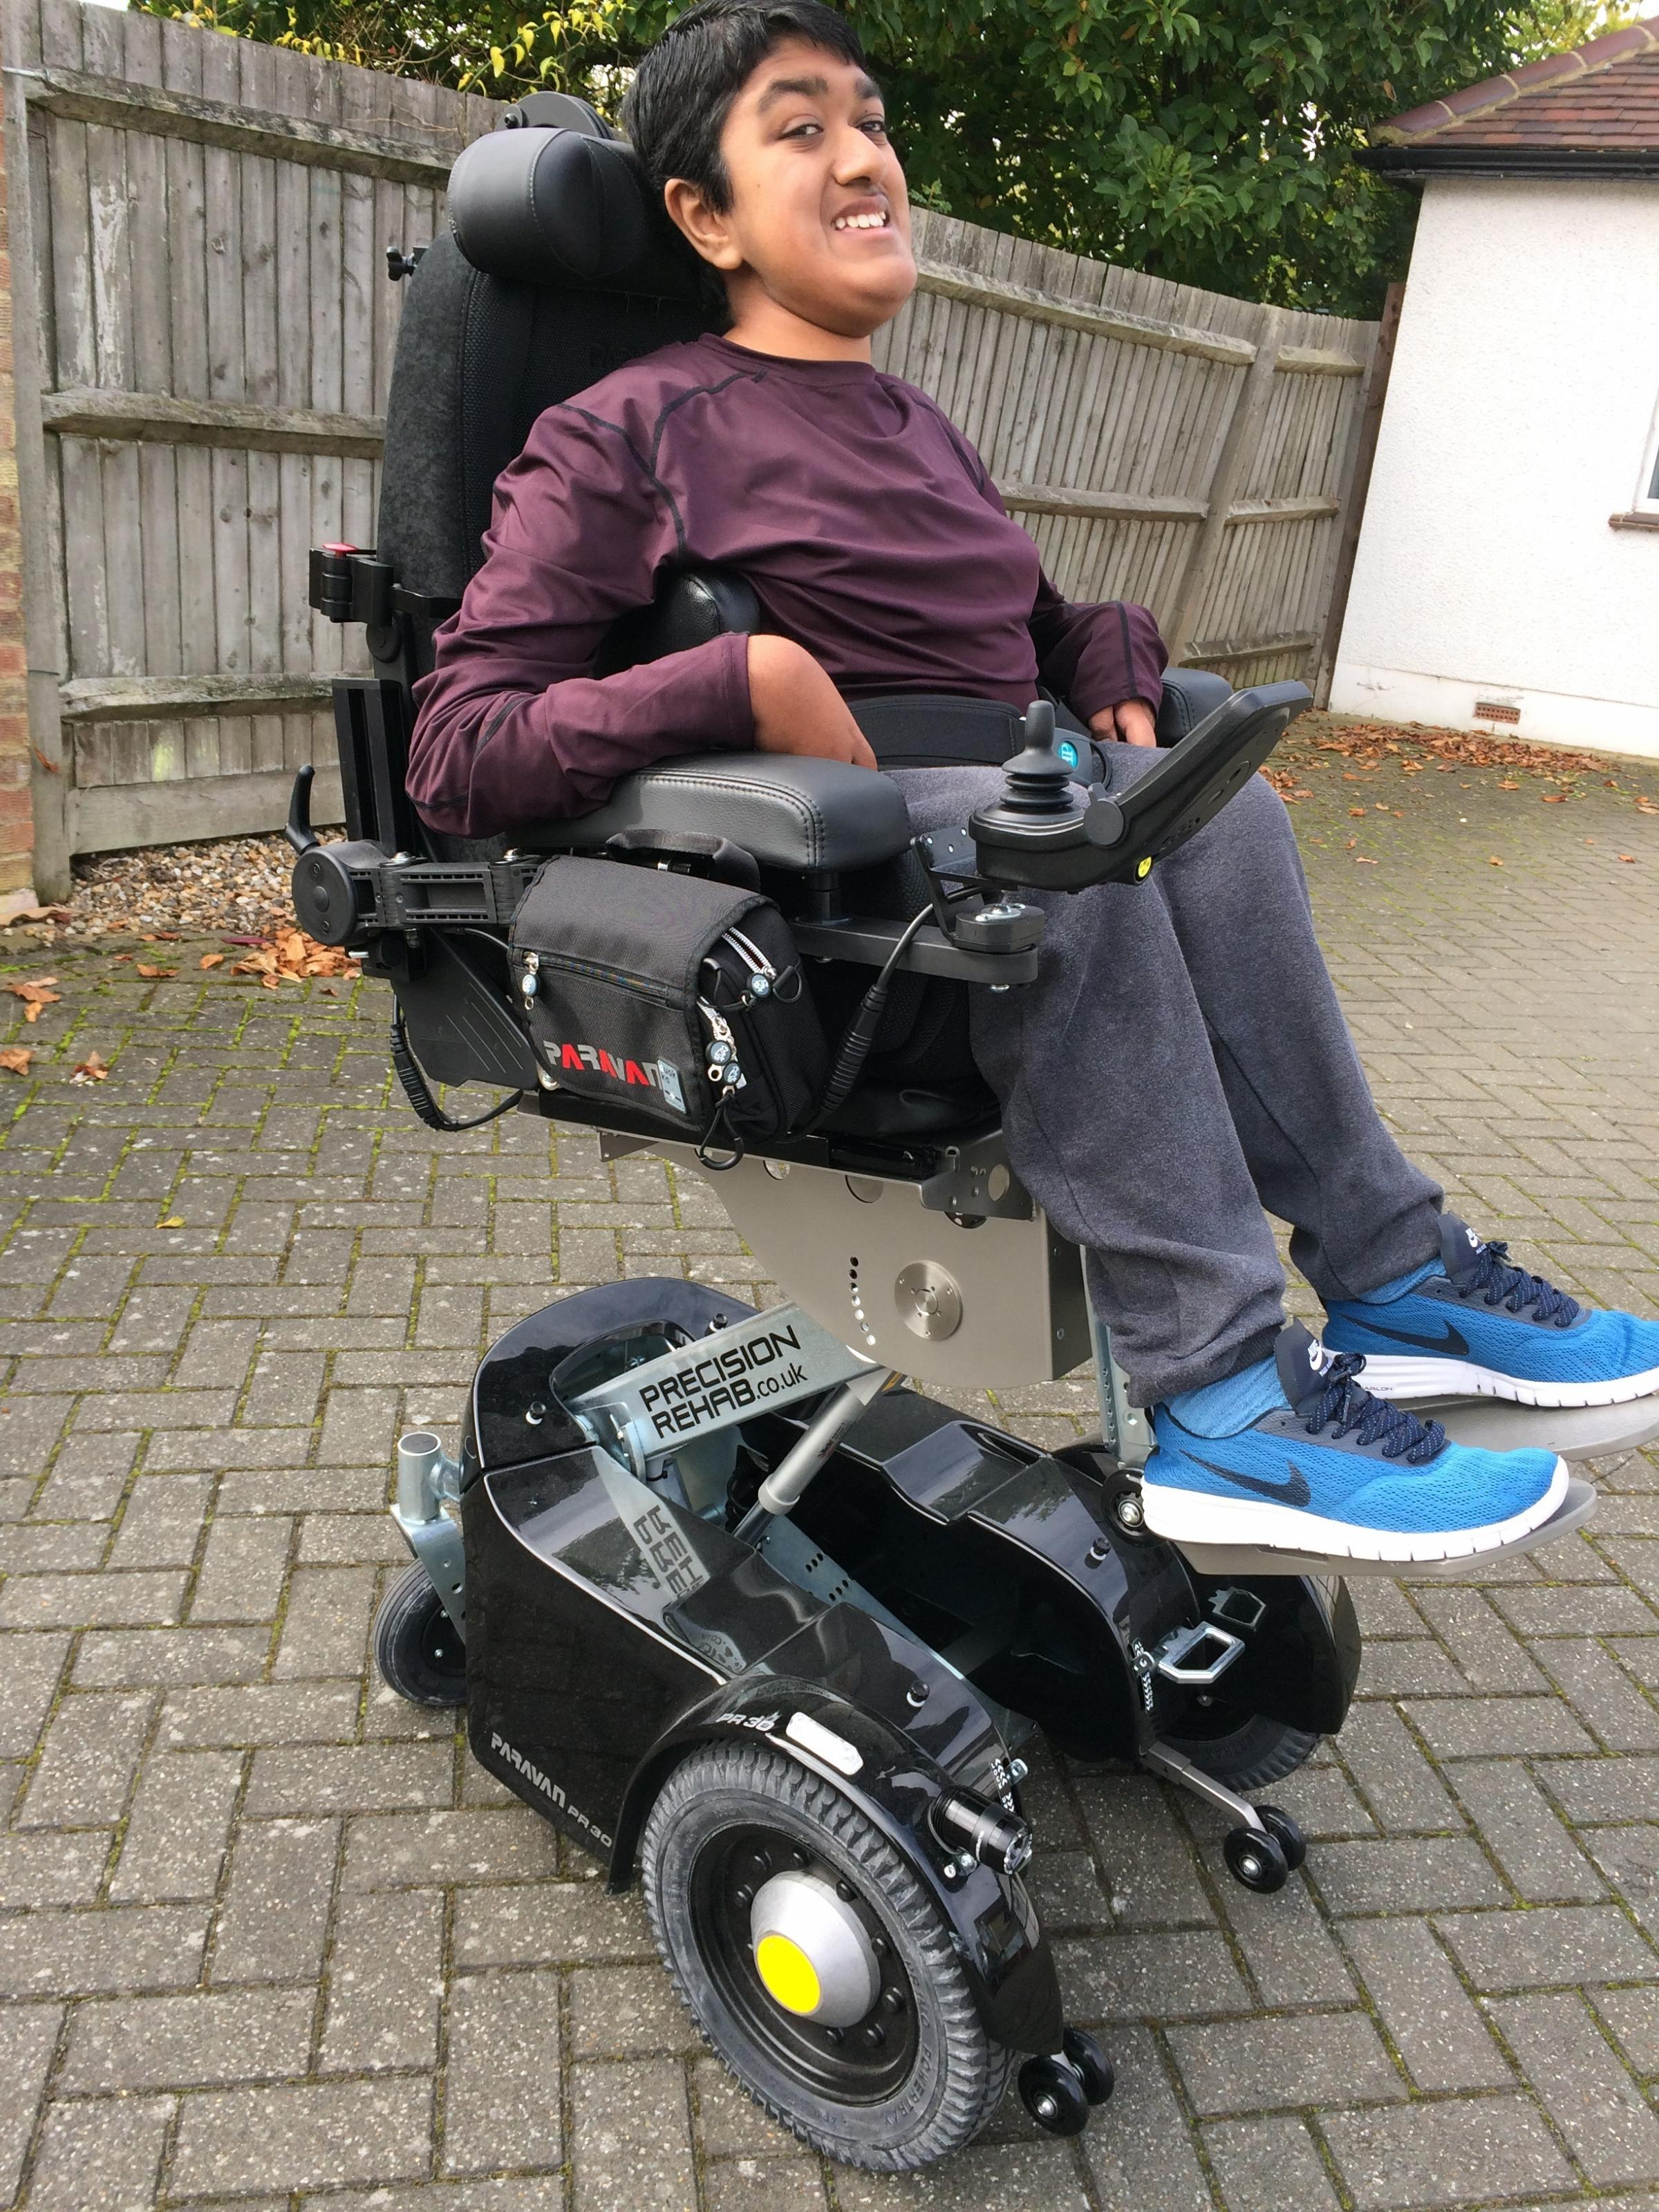 Kai Shah, 14, in his new powered wheelchair from Newlife charity